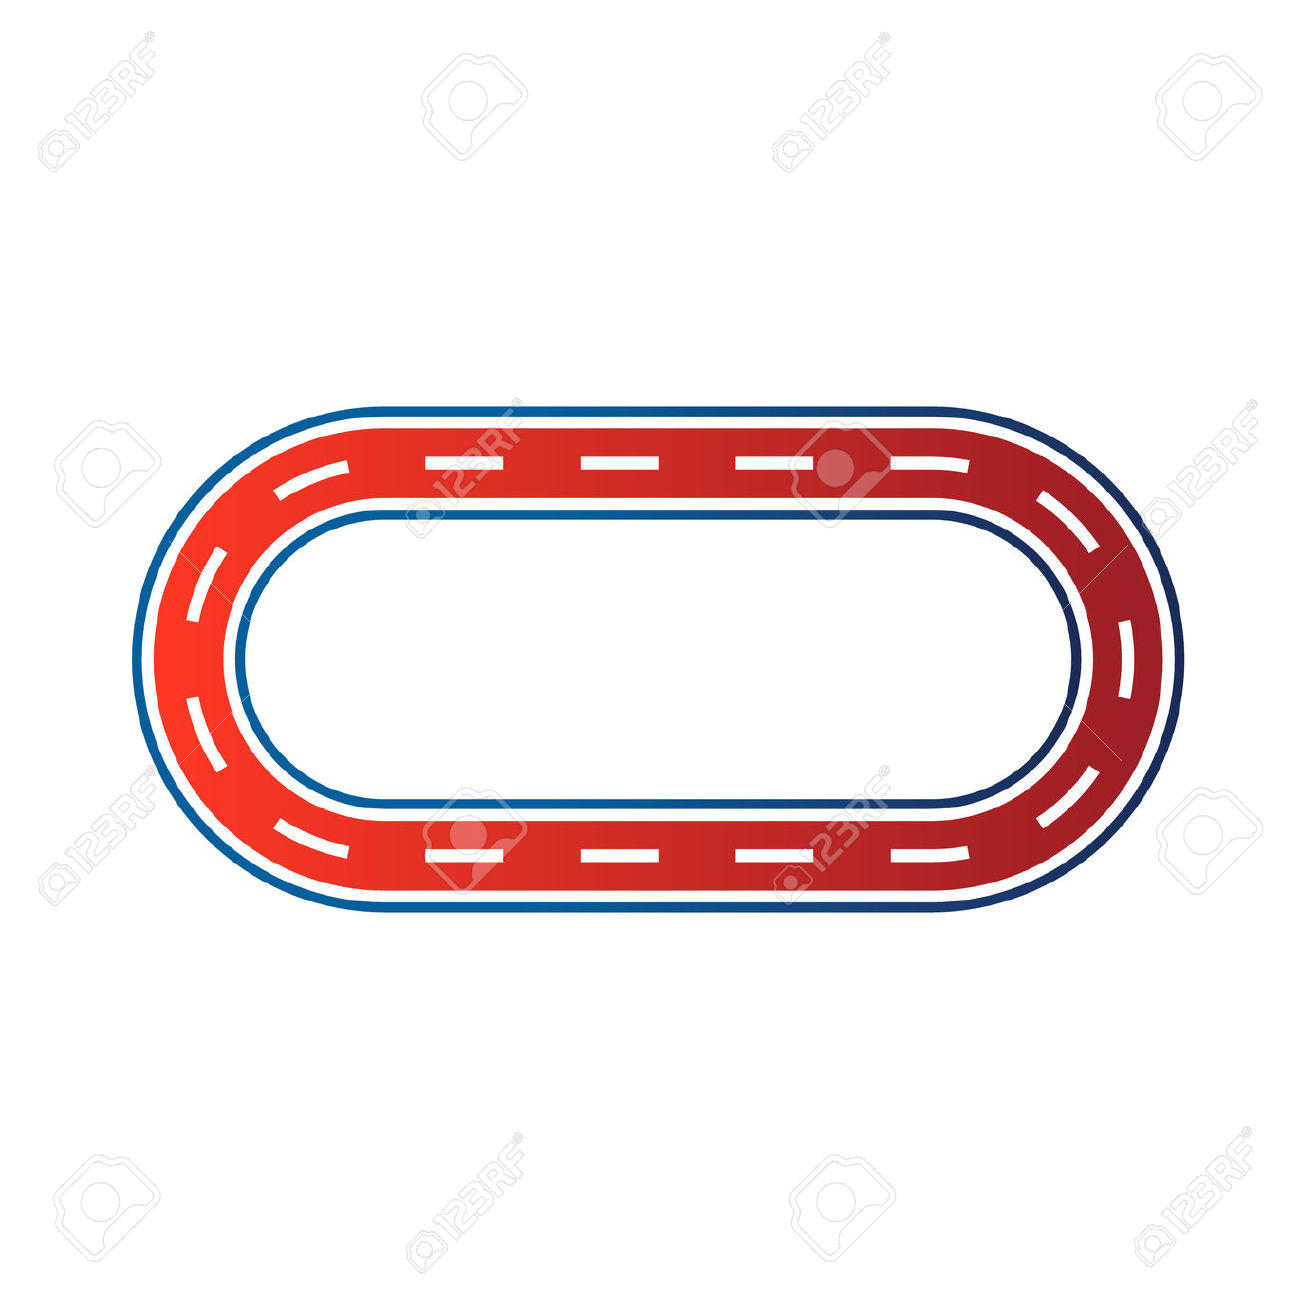 Race track clipart #3